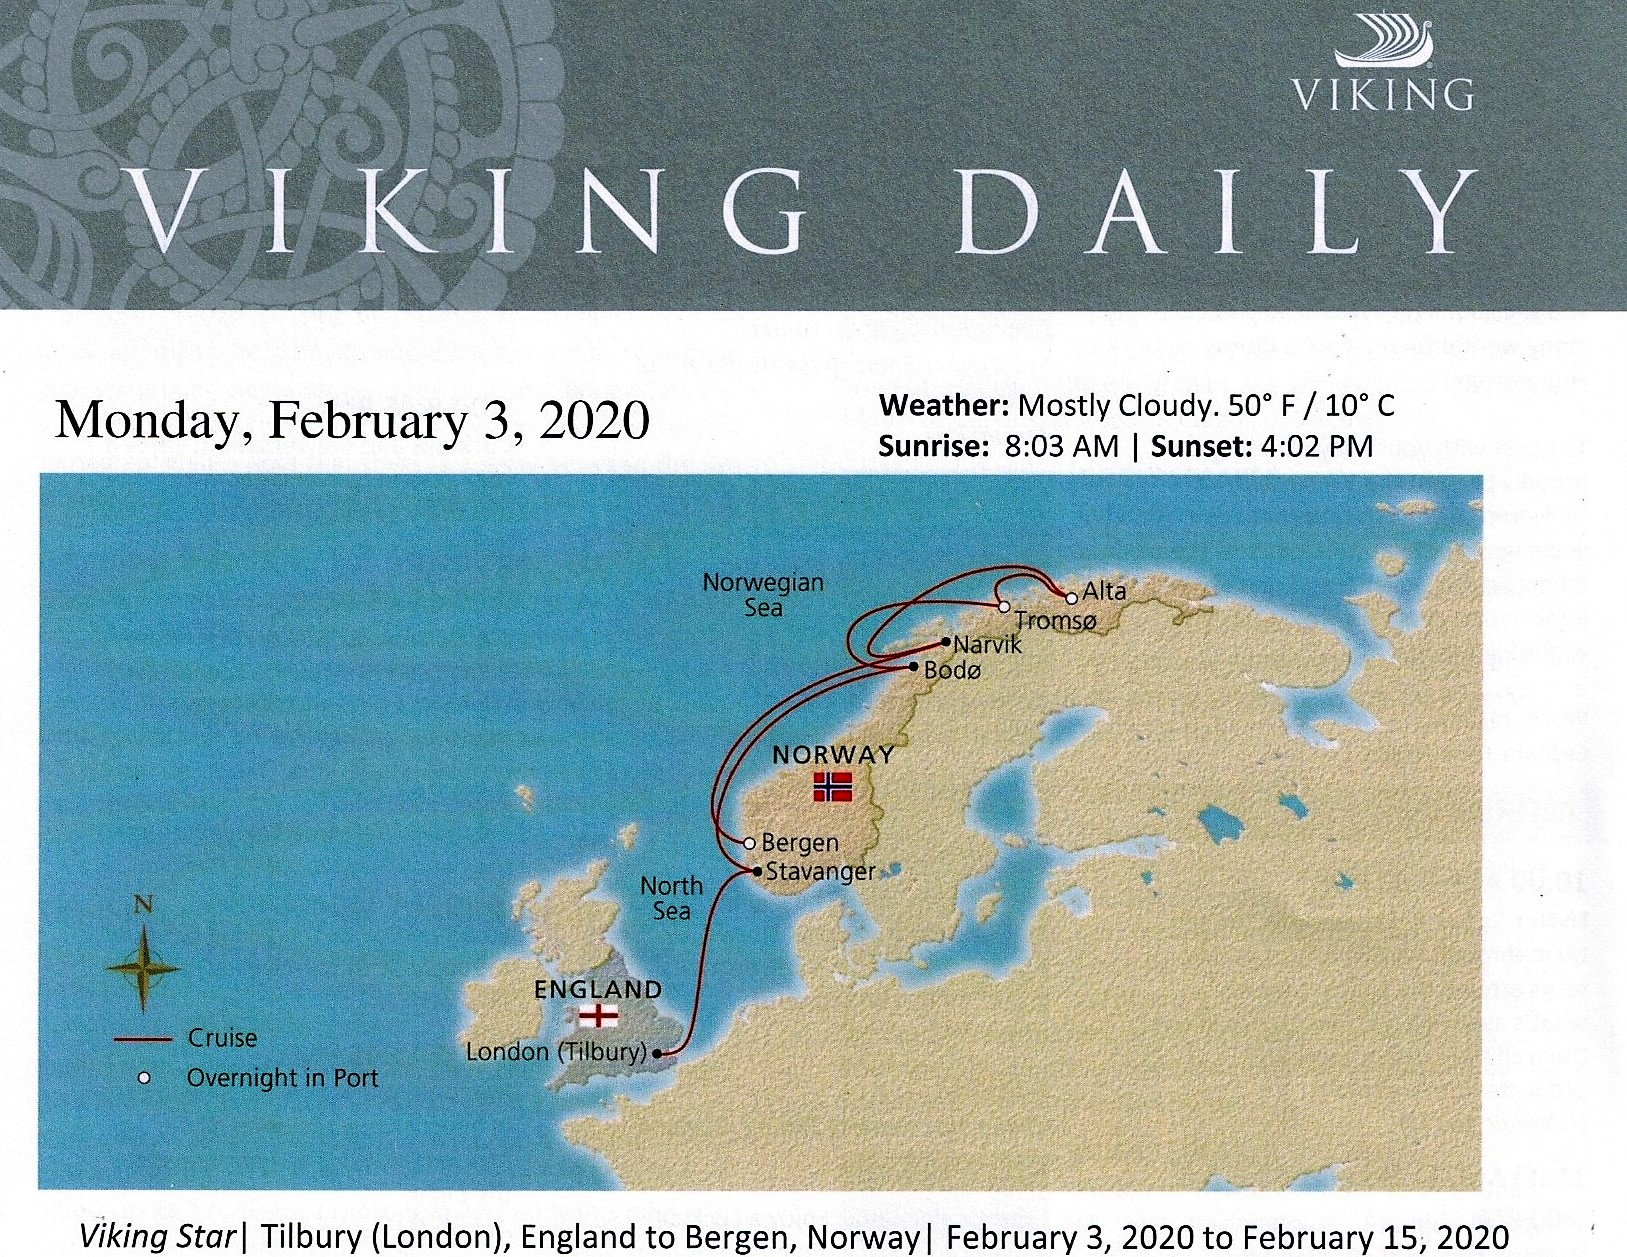 Viking Daily